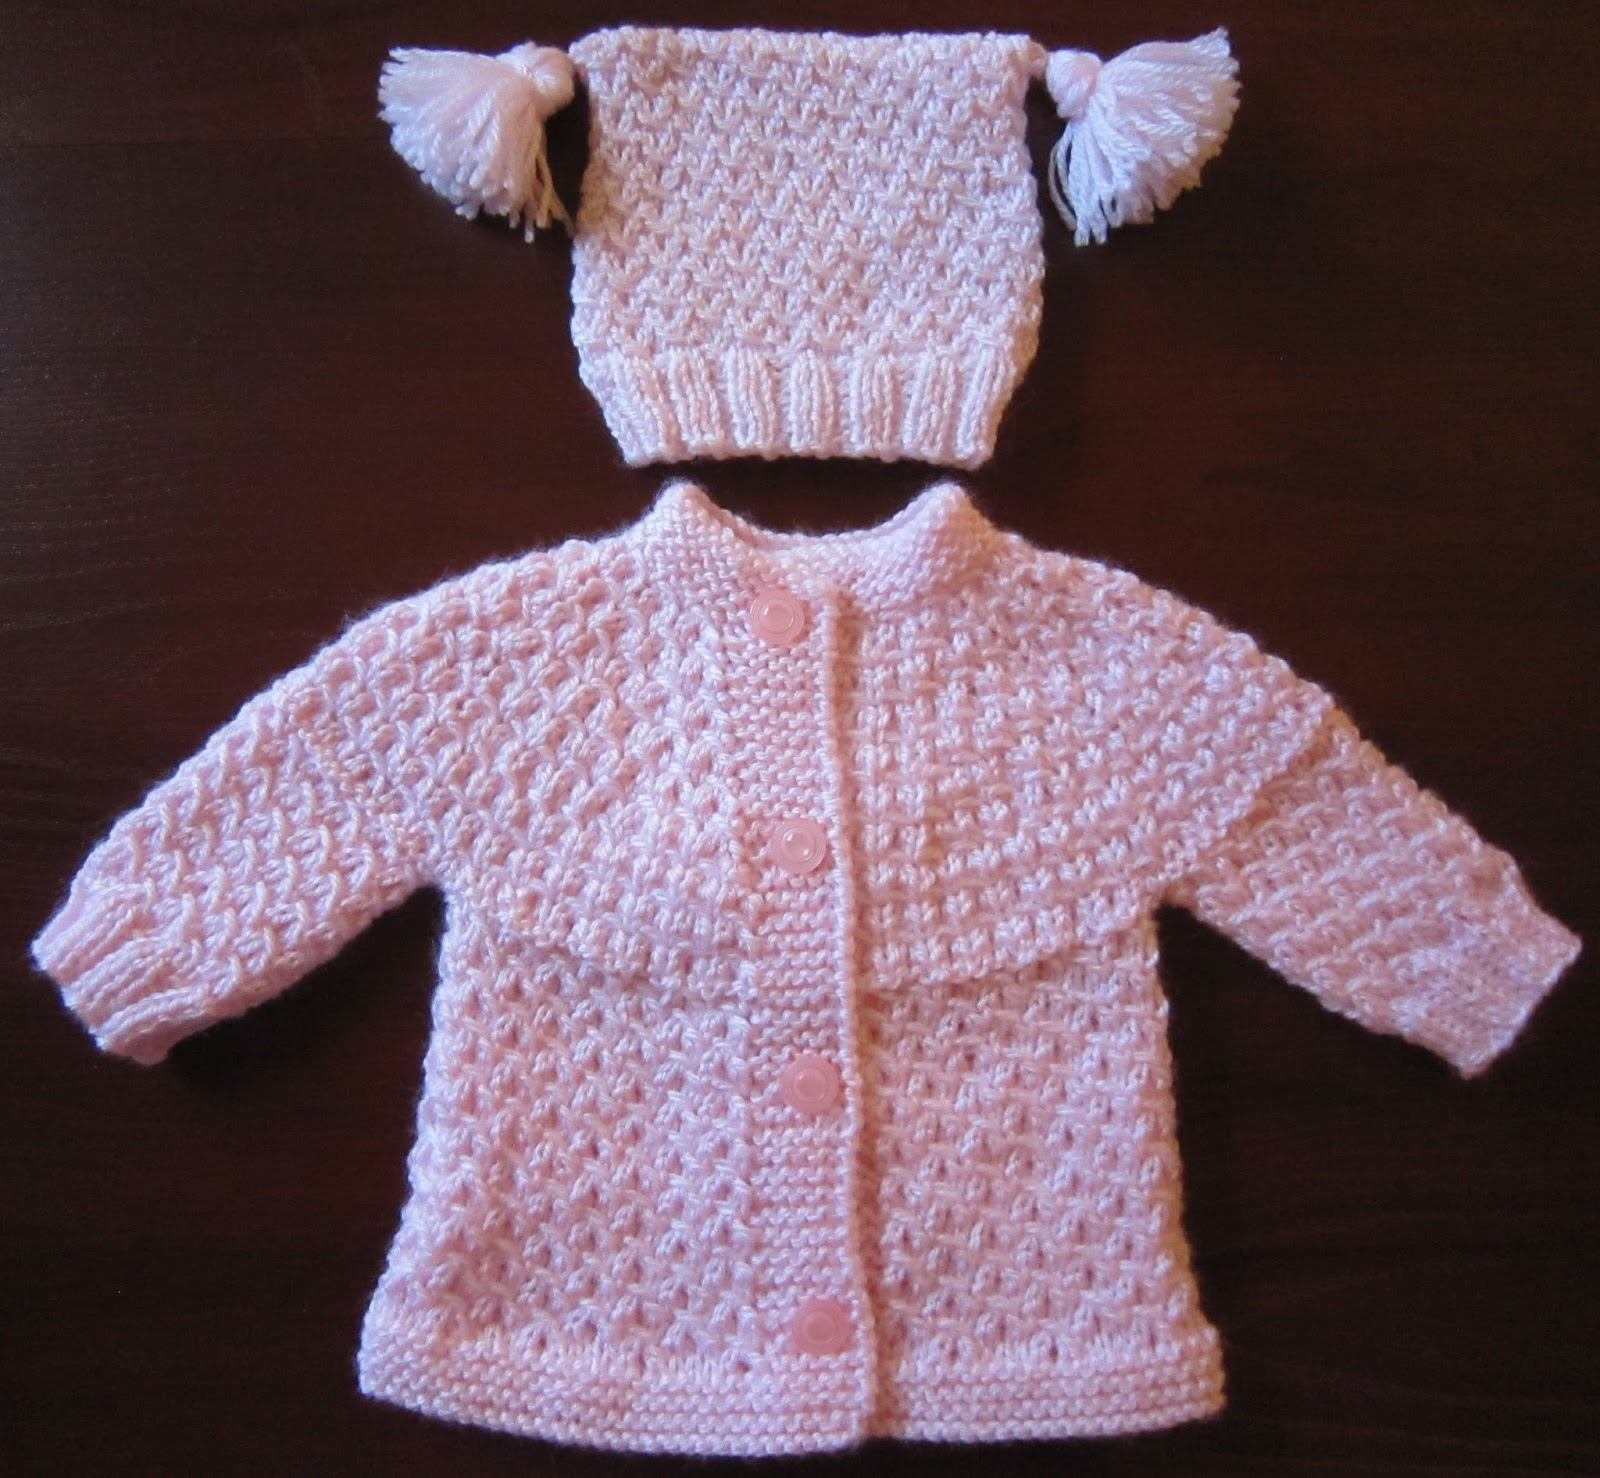 Sea Trail Grandmas: FREE PREEMIE KNIT SWEATER AND HAT WAVES PATTERN